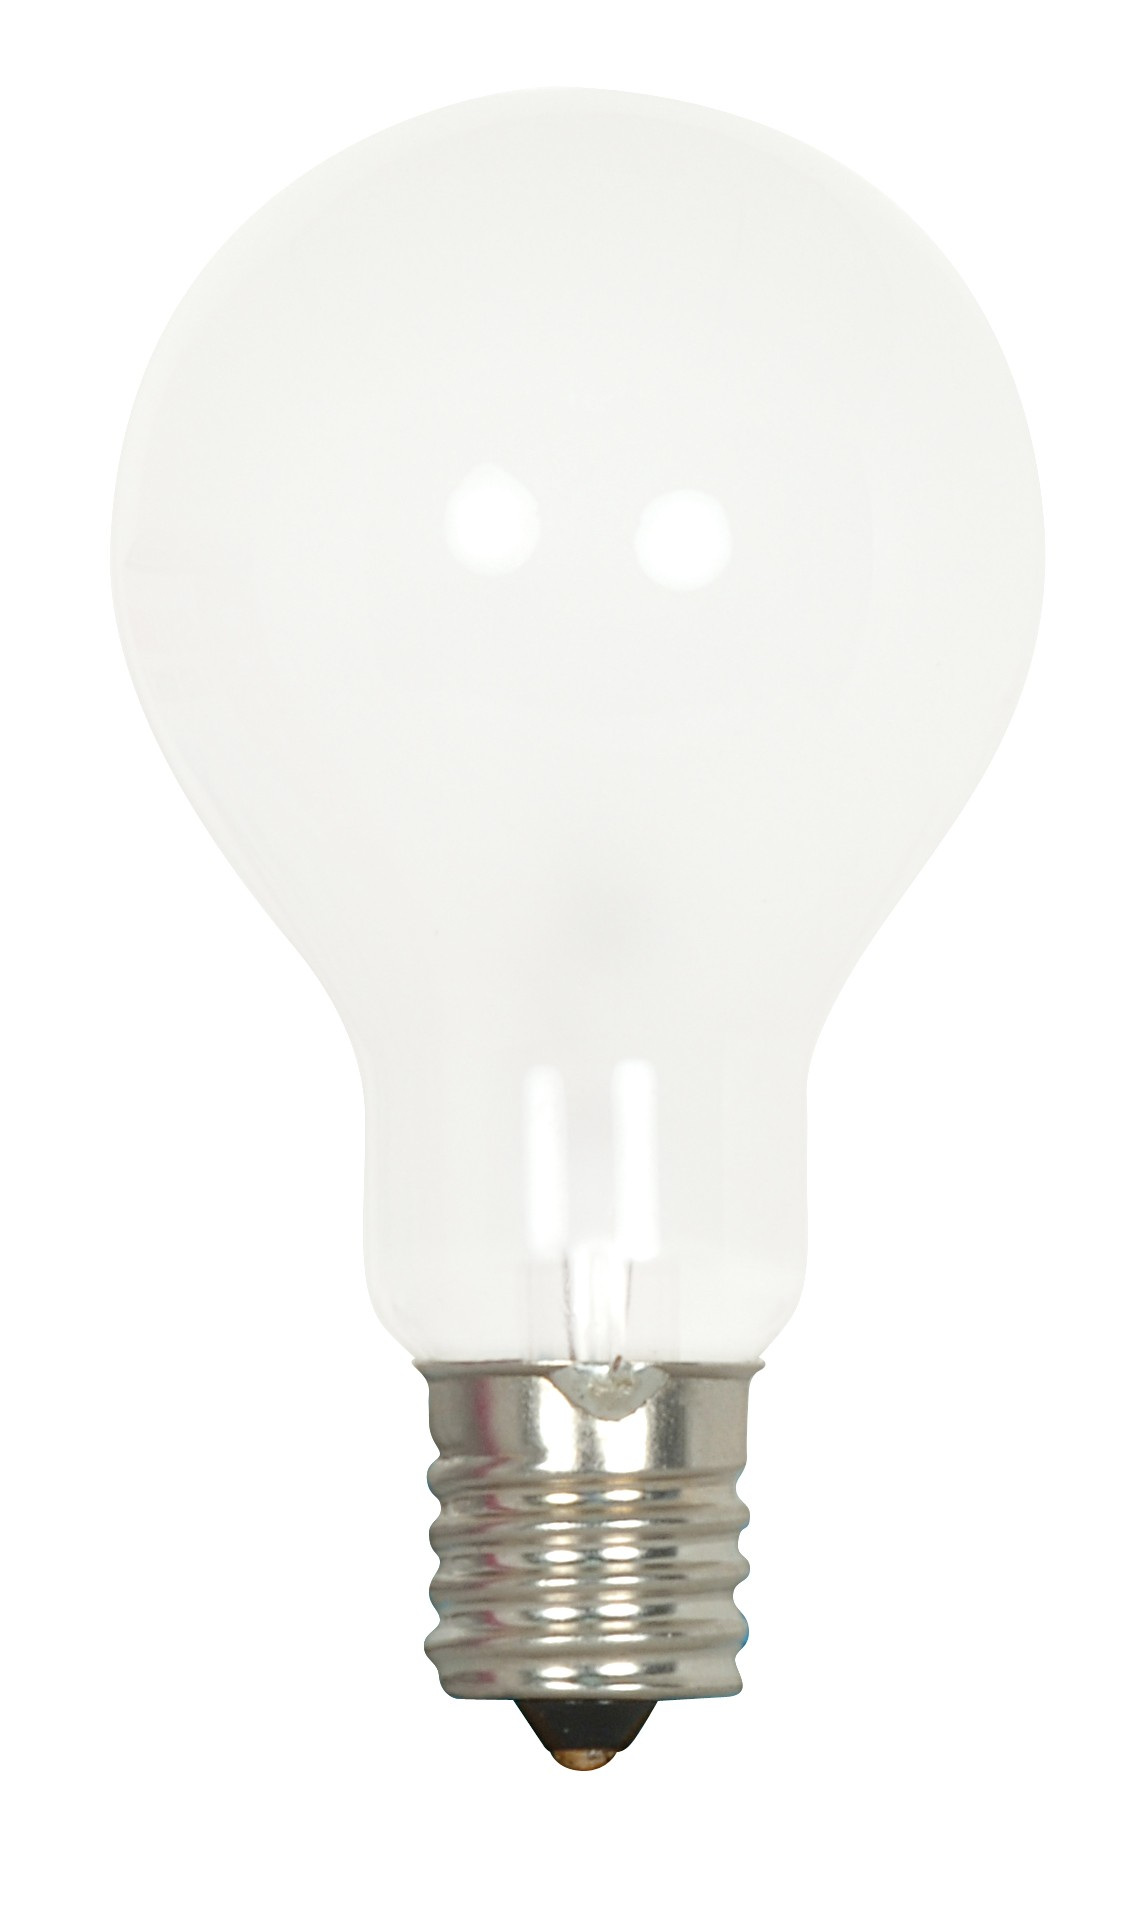 40 Watt In Lumen Satco S2745 40 Watt A15 Incandescent Frost 1000 Average Ra